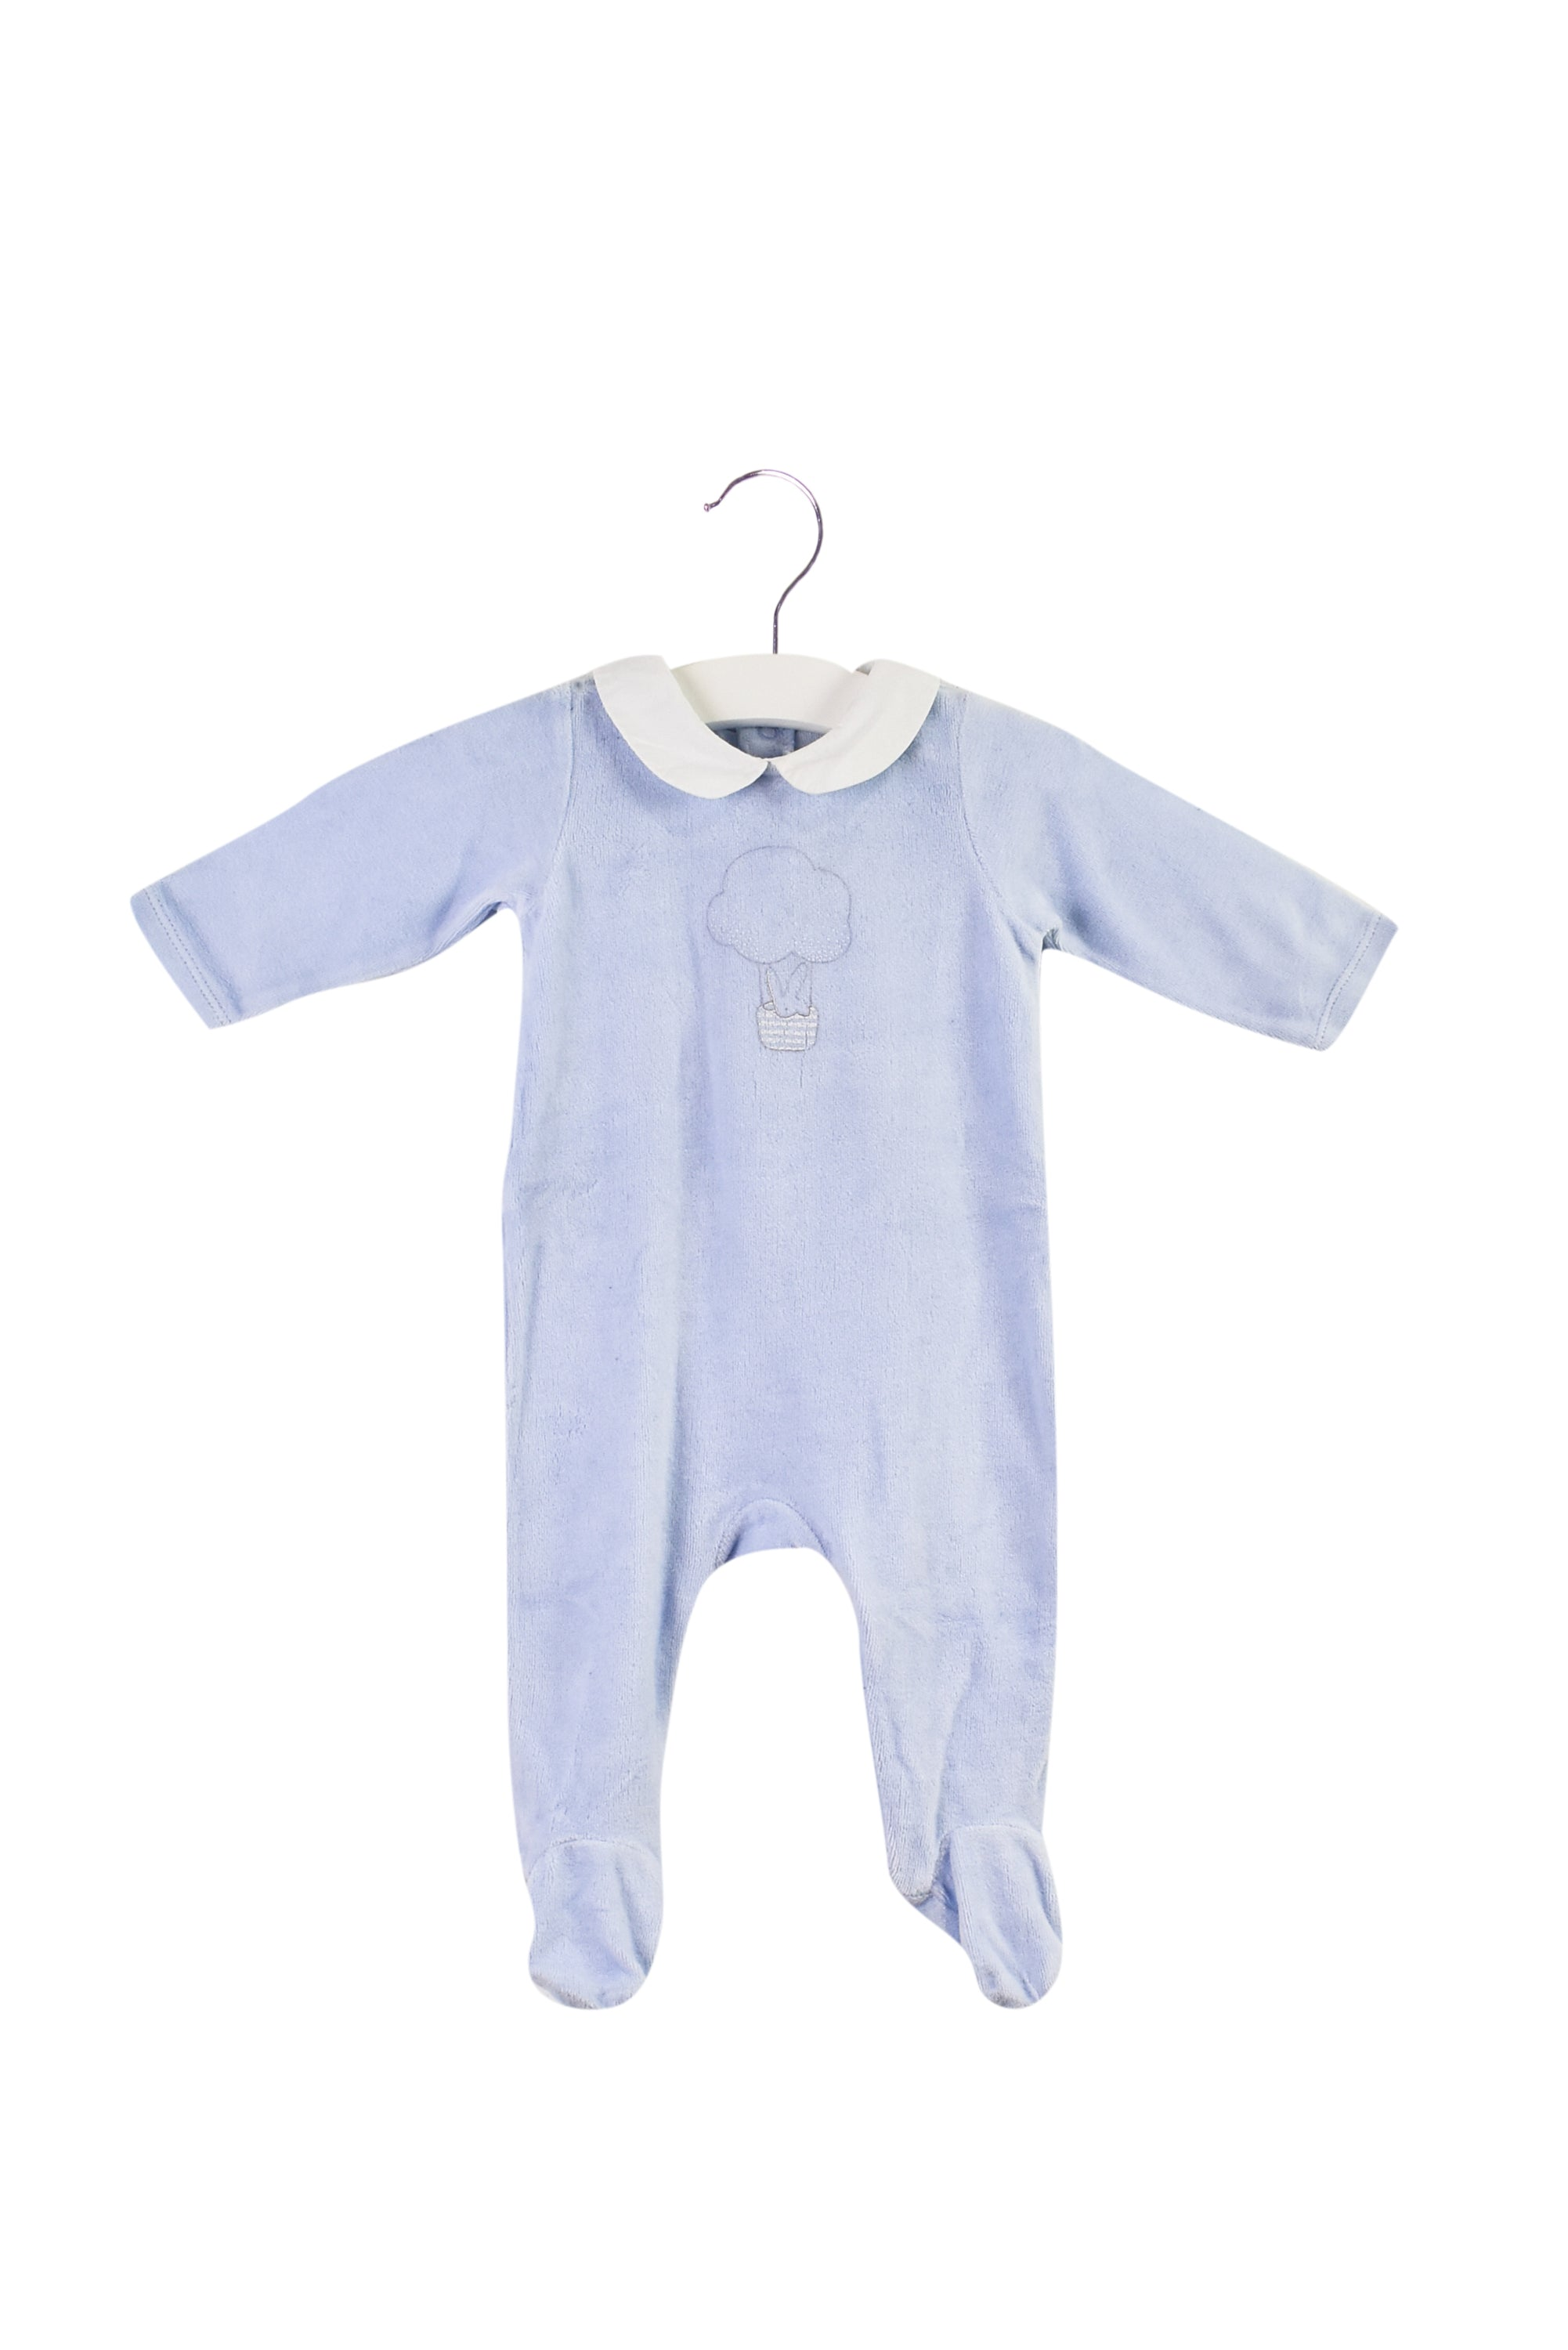 10031510 Jacadi Baby~Jumpsuit 3M at Retykle